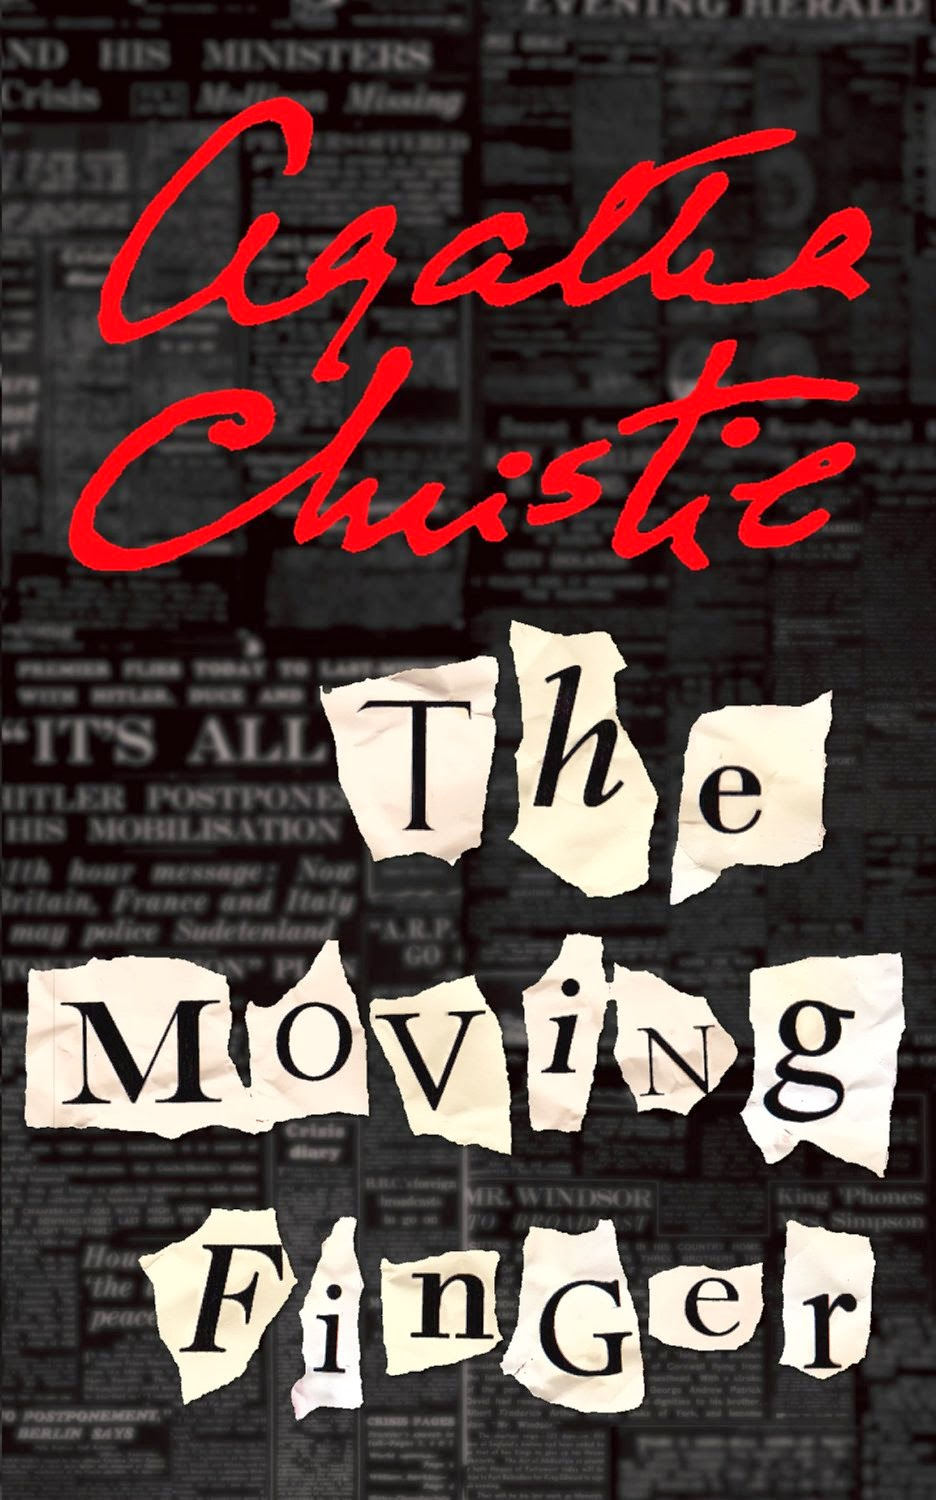 Agatha Christie - The Moving Finger pdf ~ novels society blog